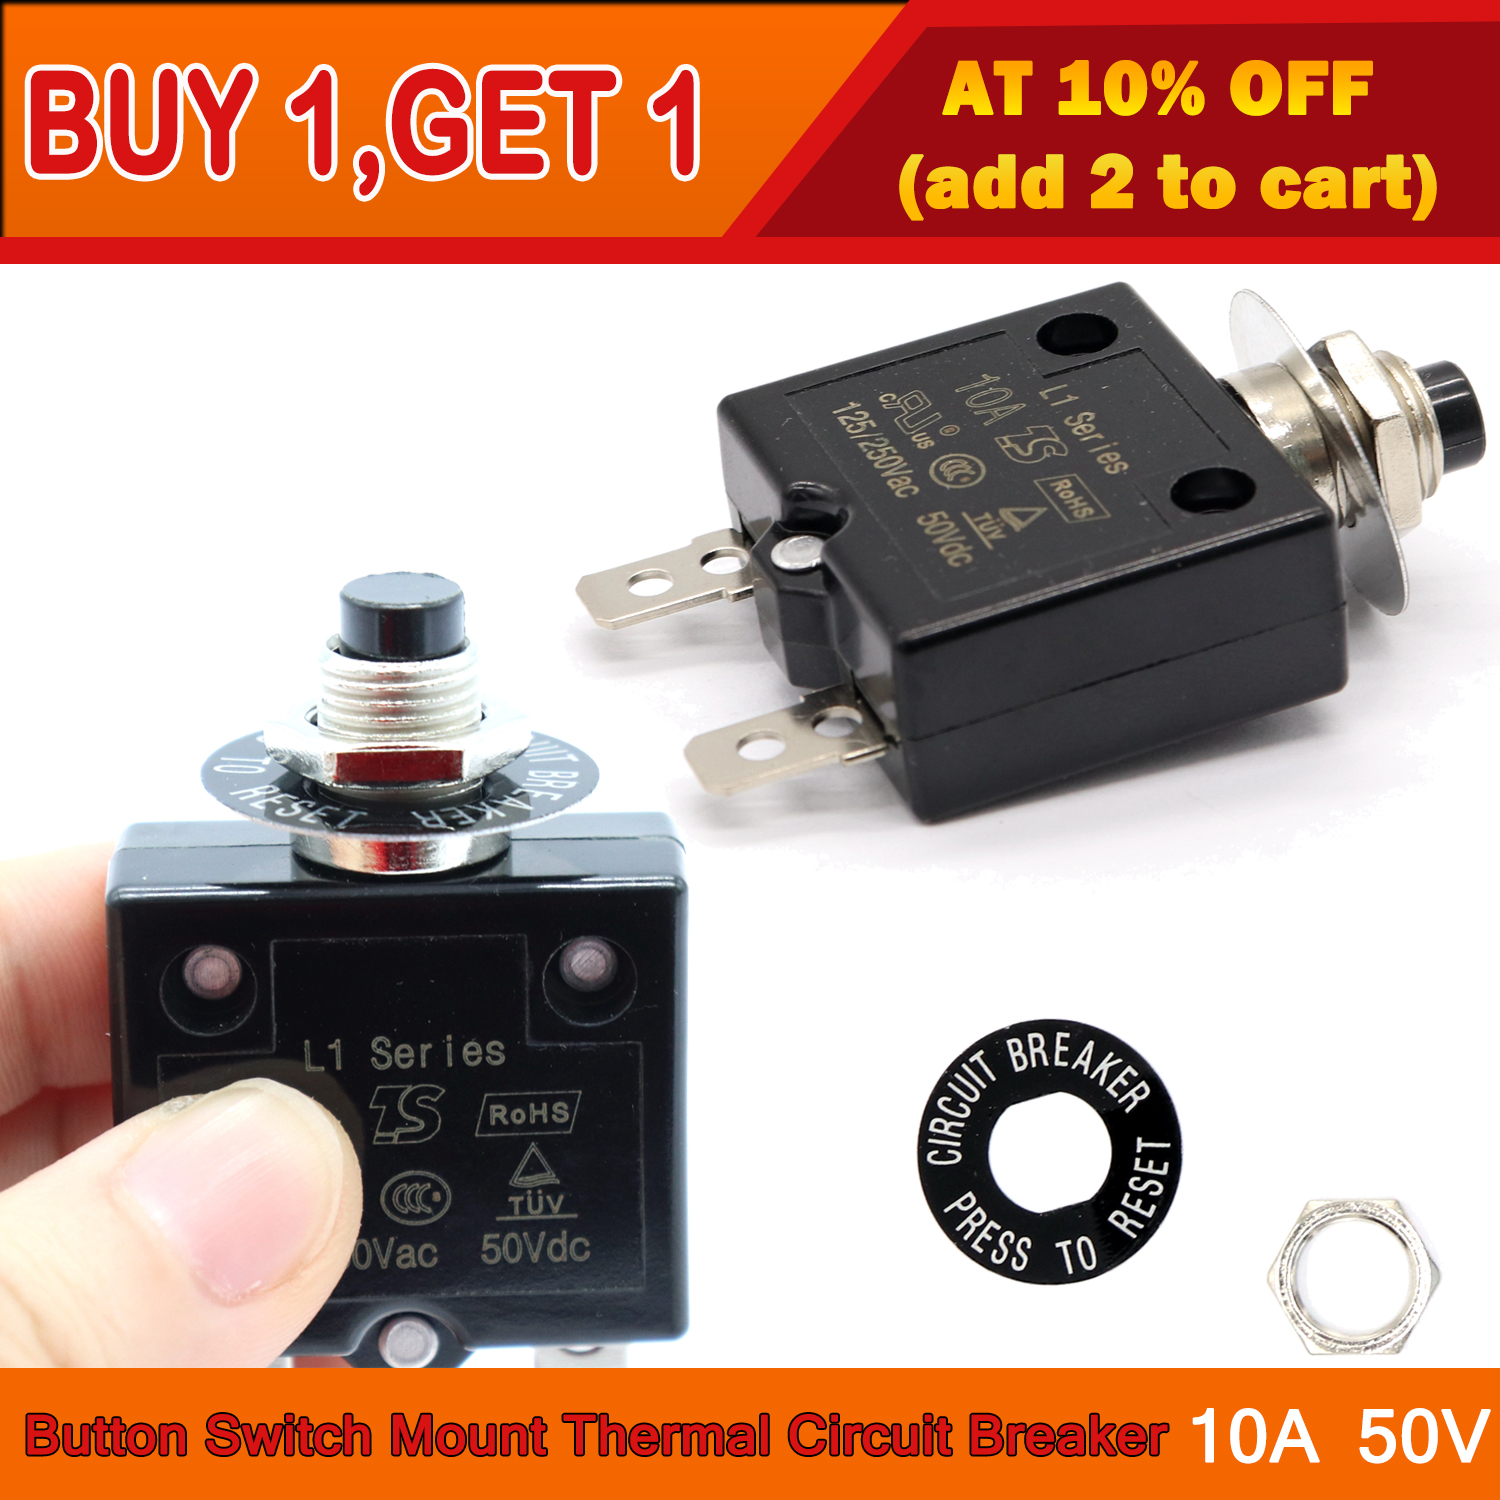 125 250v Electrical Circuit Breakers Button Switch Connect Terminal Manual Reset